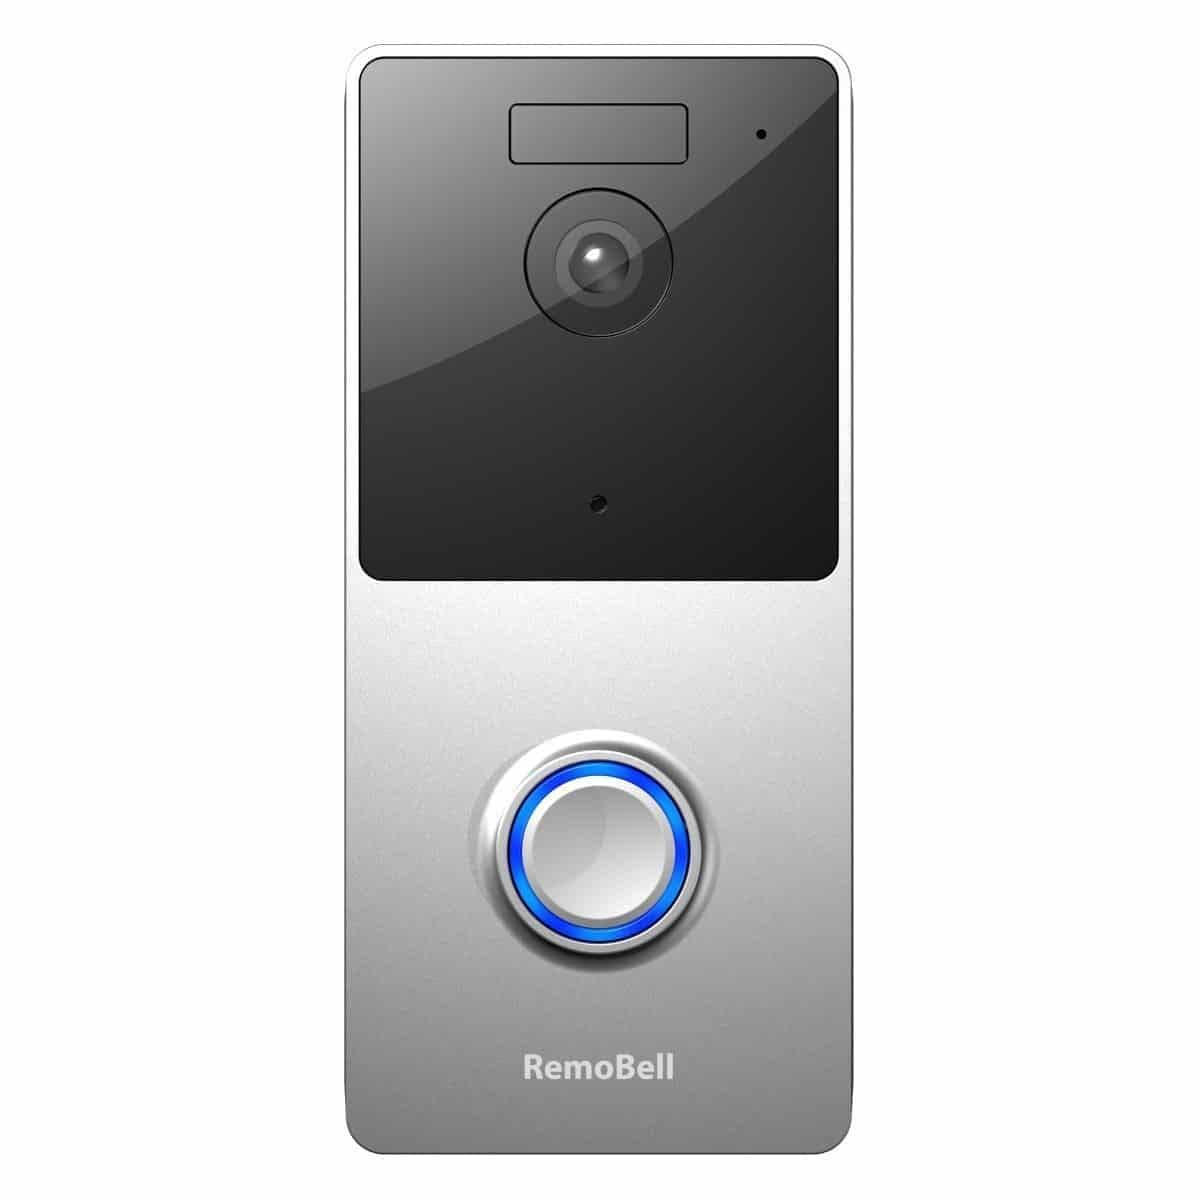 A forward view of the Remobell Video Doorbell.